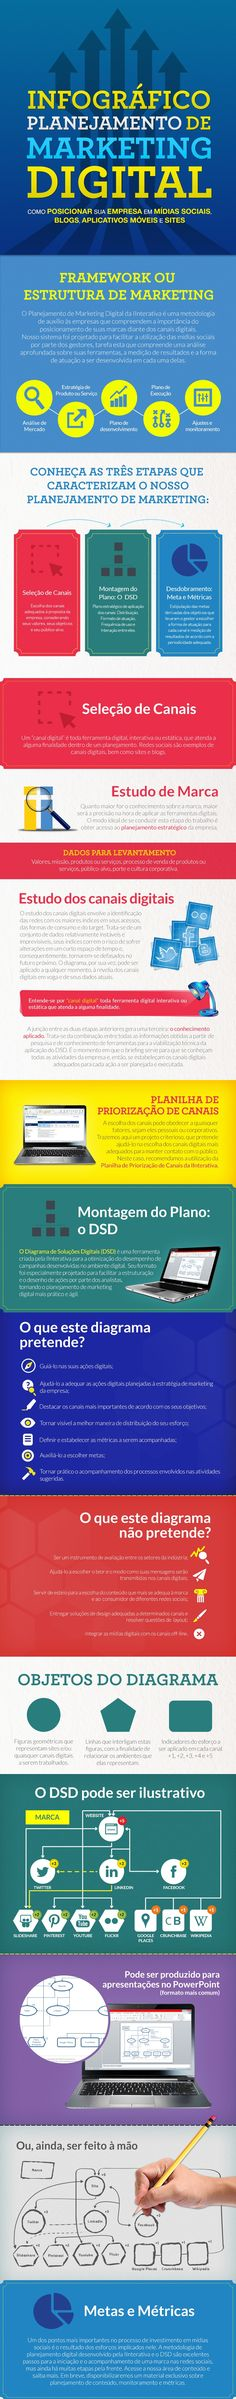 Infográfico: Plano de Marketing Digital | Fonte: IInterativ